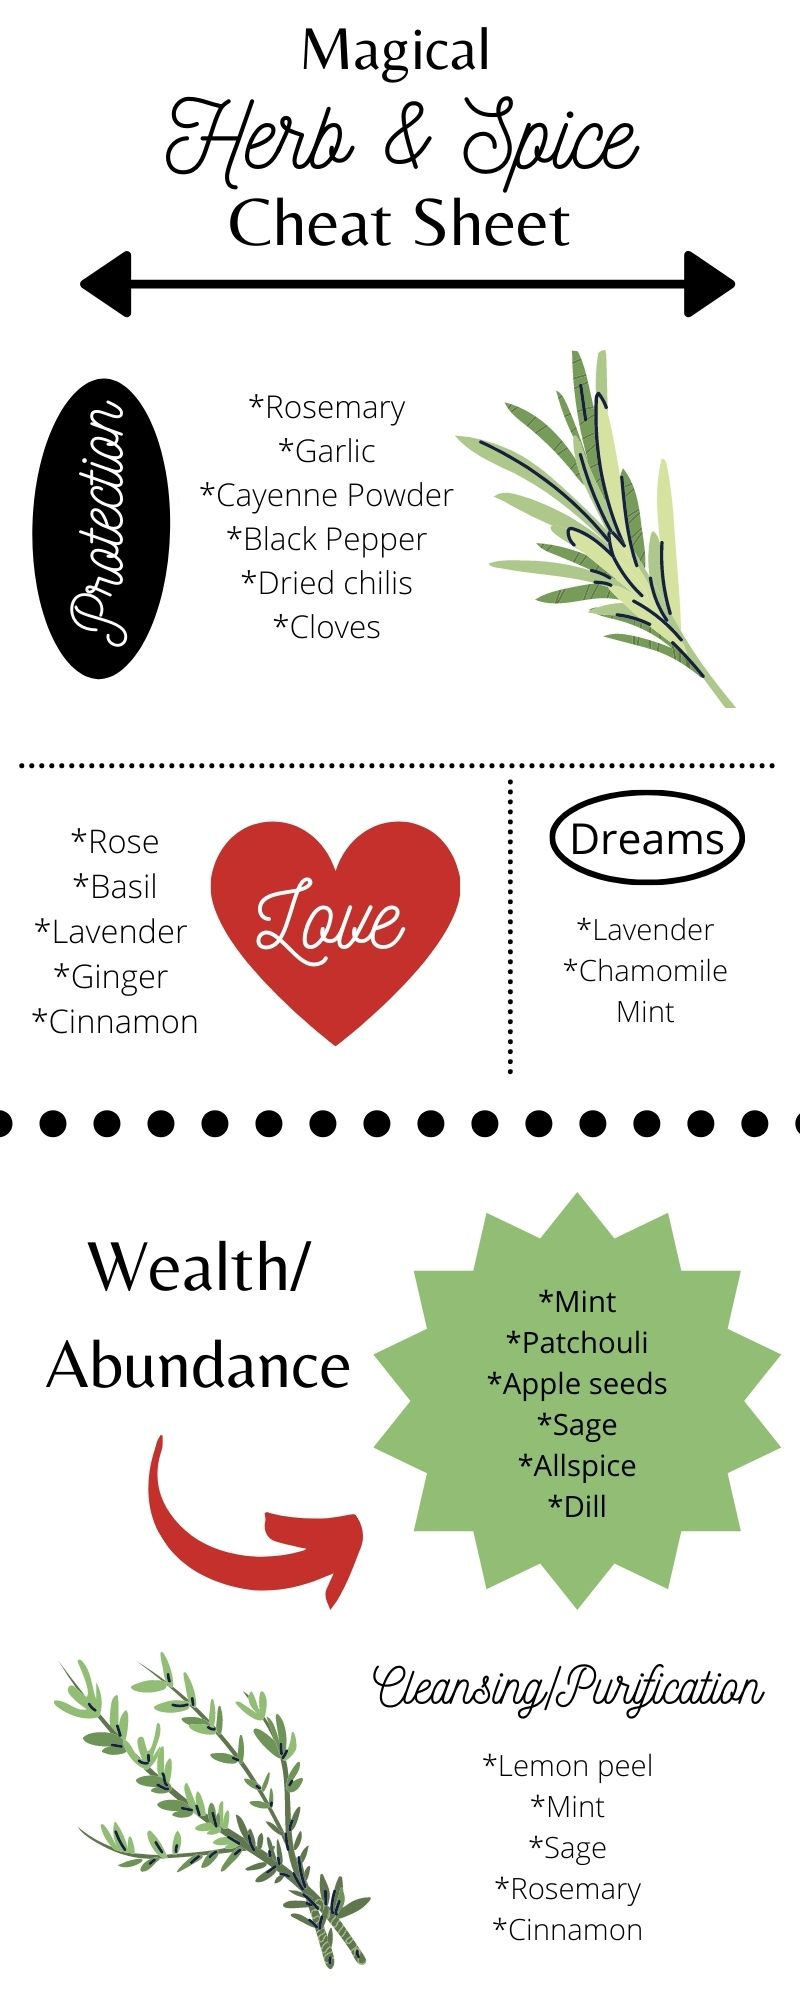 Know your witchy herbs with this ridiculously useful cheat sheet.